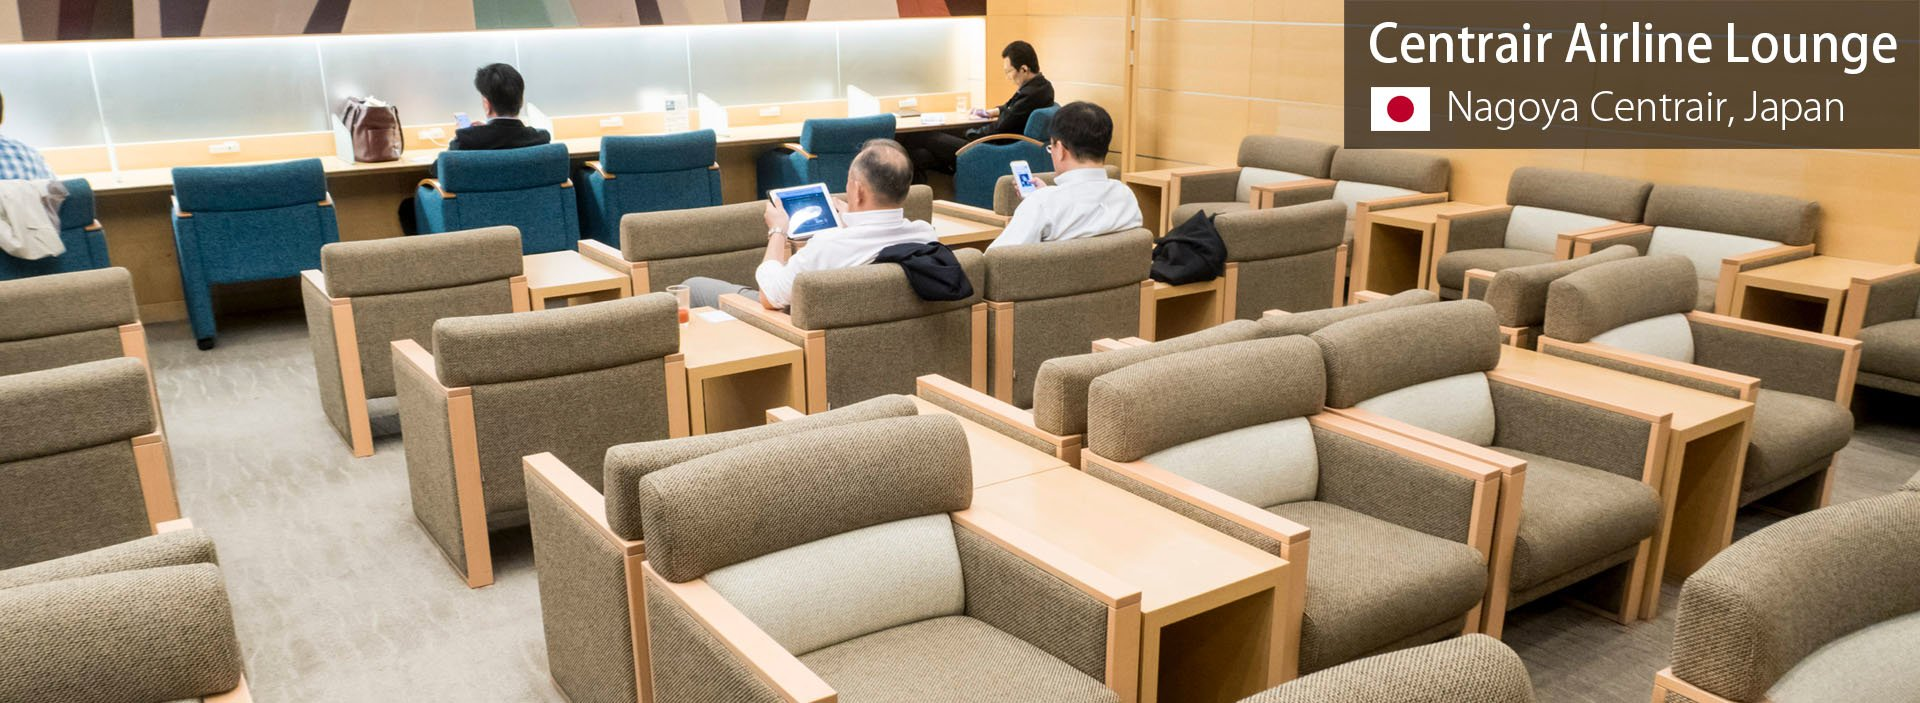 Lounge Review: Centrair Airline Lounge at Nagoya Centrair